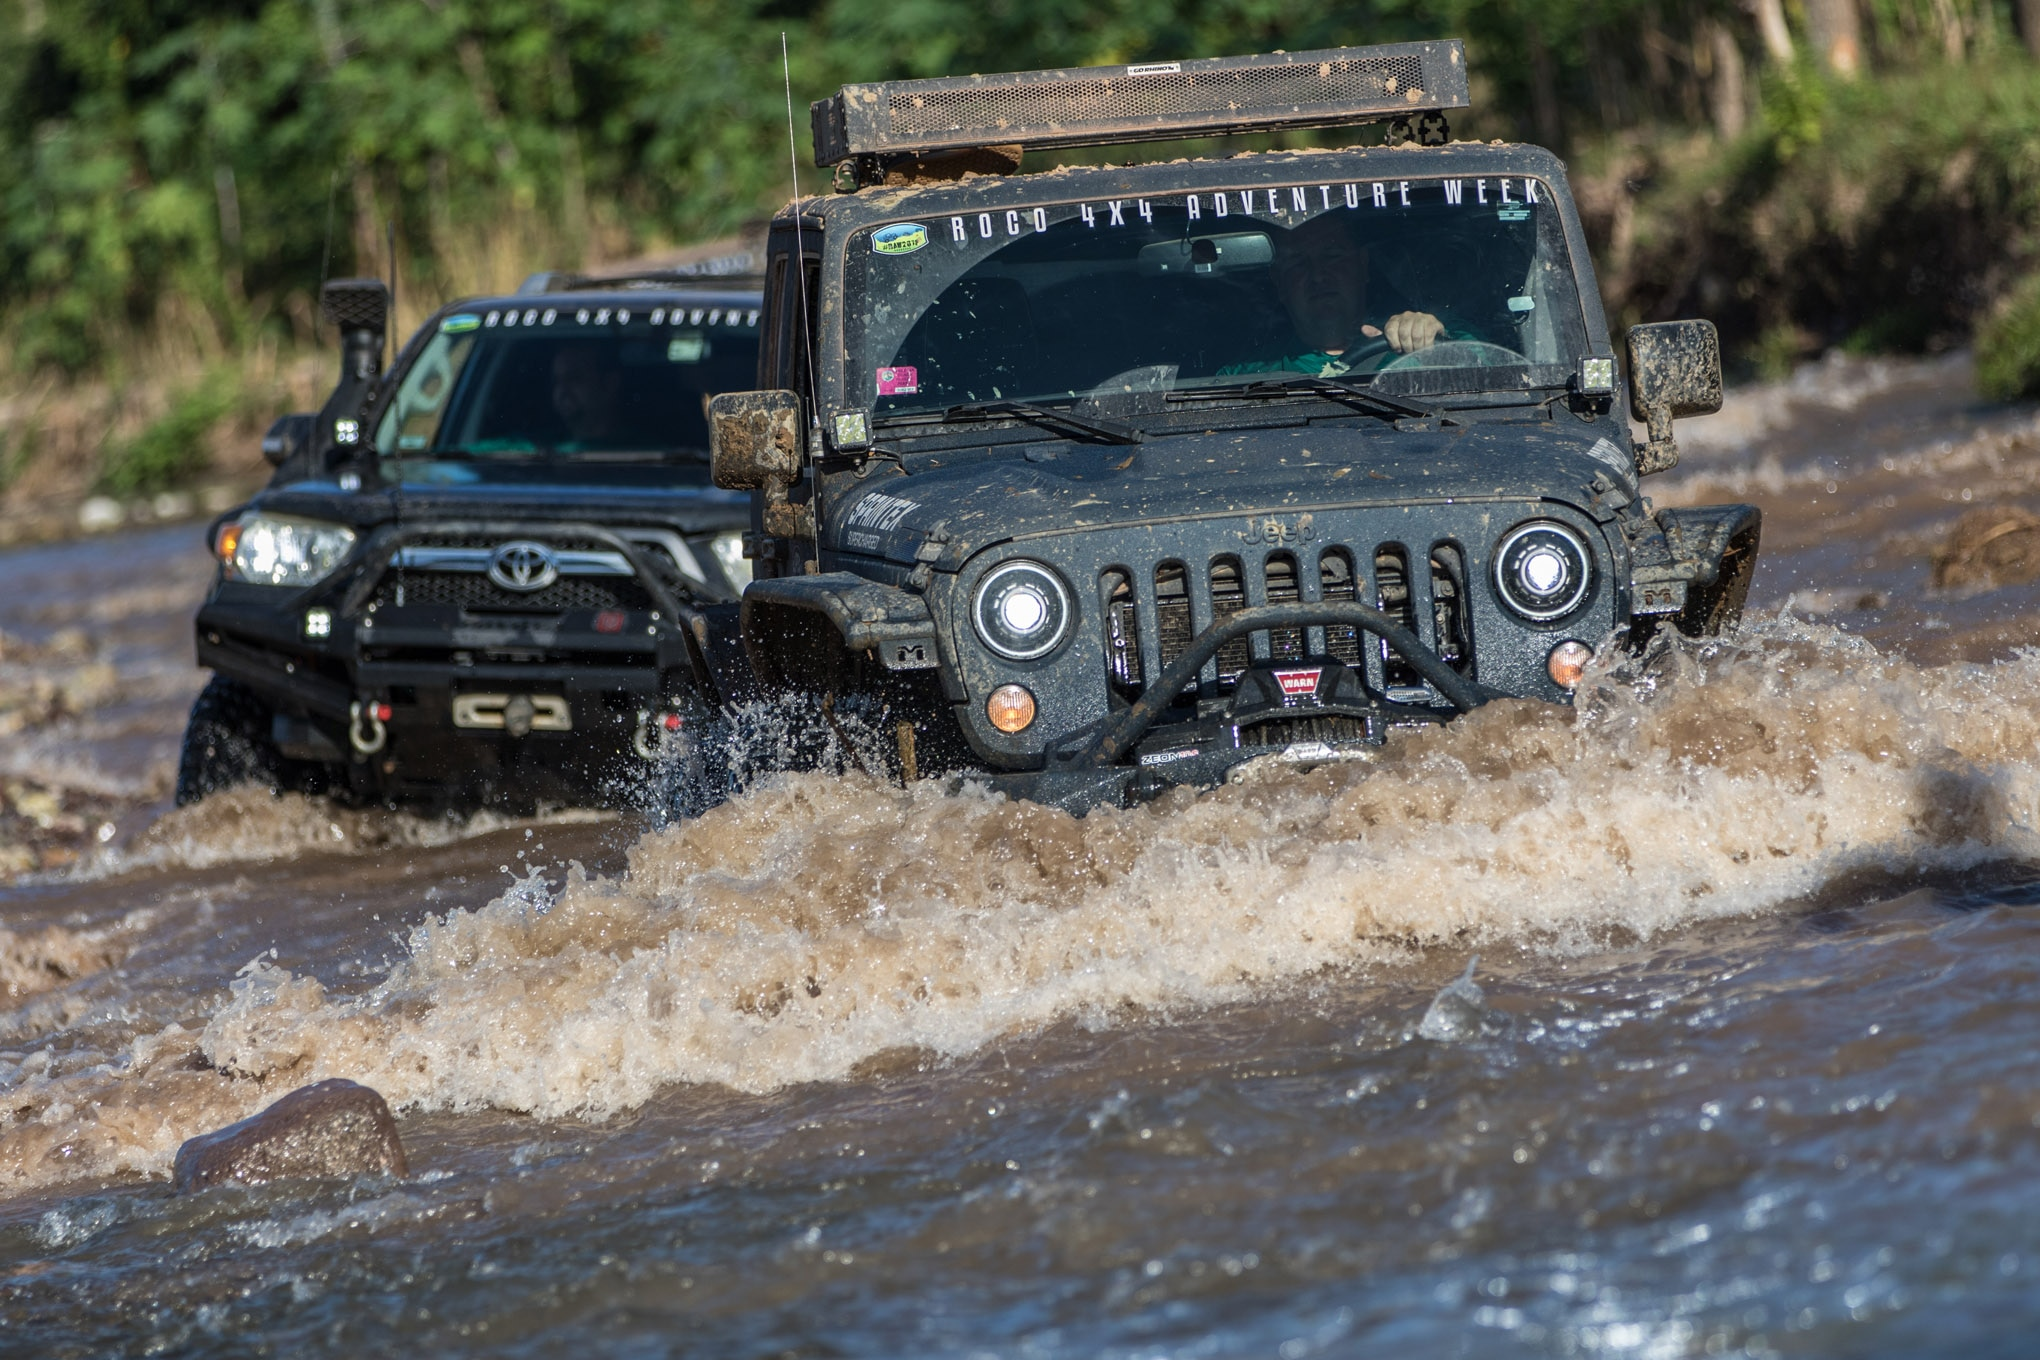 All of the rain swelled up creeks and rivers that were normally just a trickle, but at least the riverbeds were rocky and firmer than the mud we found in the jungle. Tyrone Jones was pushing water with the front bumper on his JK, but it was well below the air intake on the supercharged Jeep.